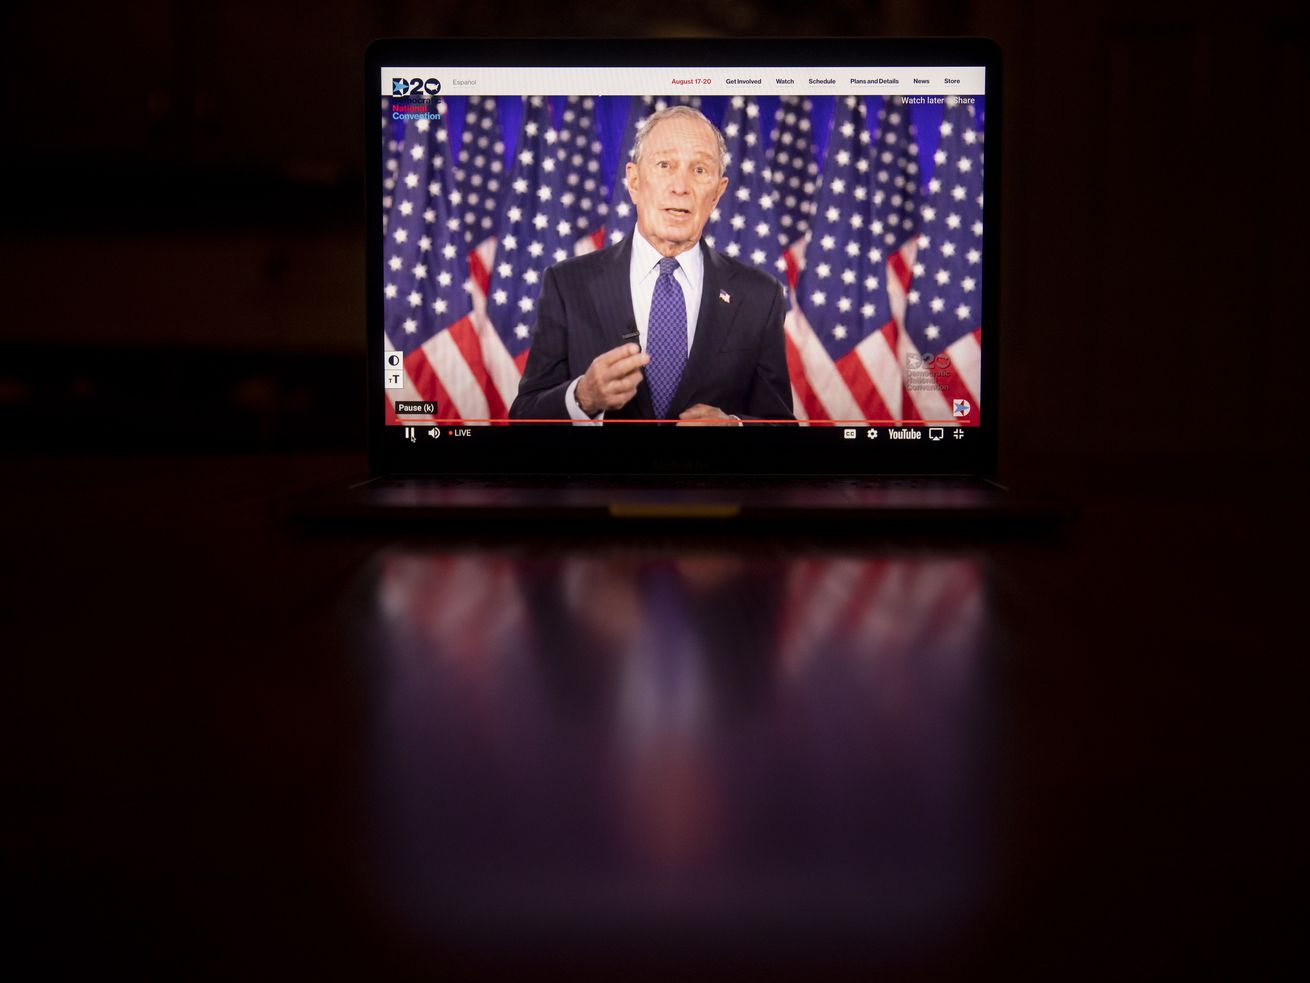 Mike Bloomberg speaking on a screen.